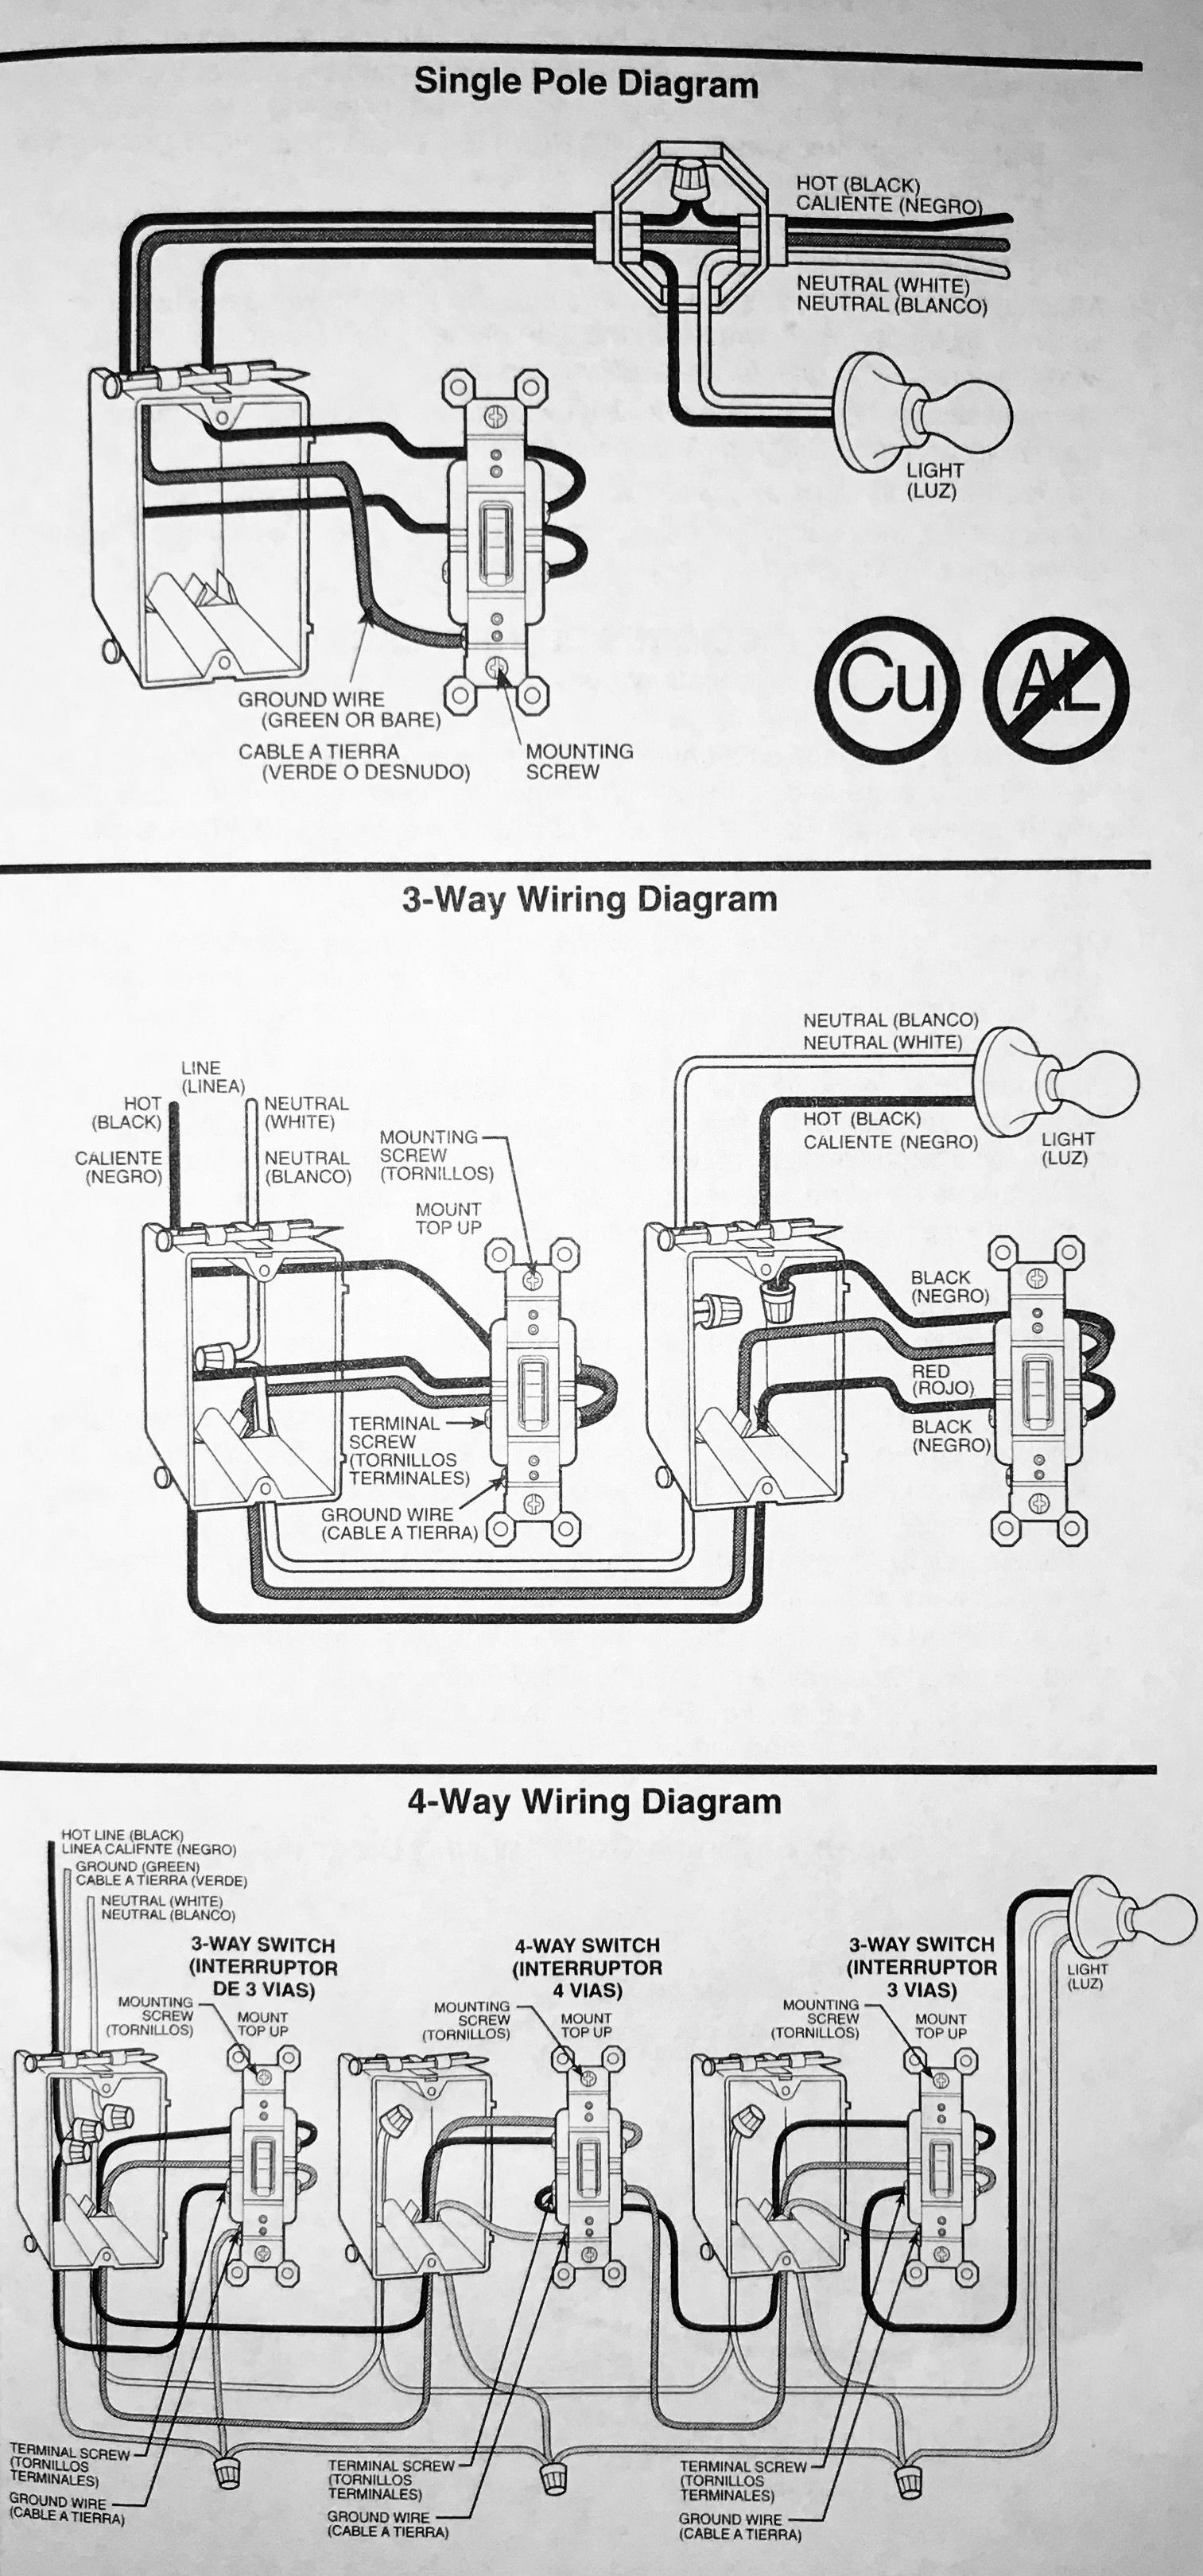 medium resolution of 3 pole wiring diagram wiring diagram imp 3 pole switch wiring diagram 3 pole wire diagram